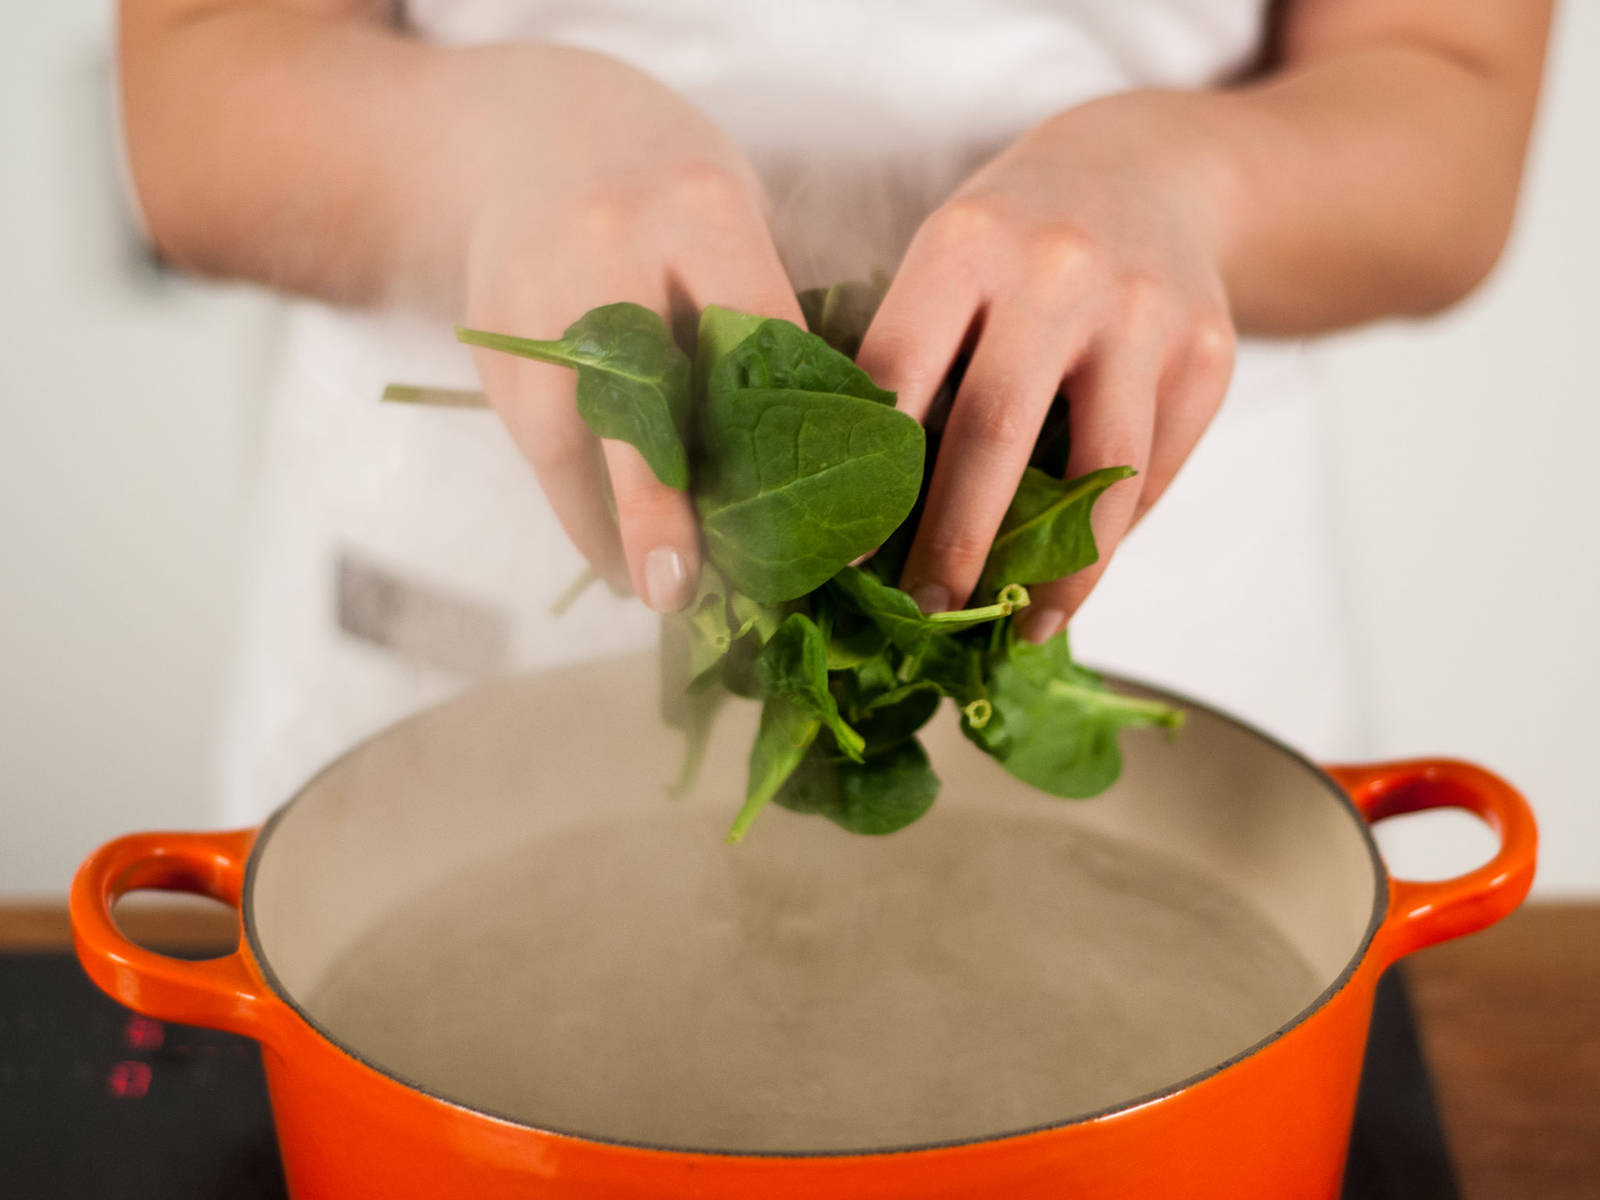 Add water to a large saucepan and bring to a boil. Blanch spinach for  approx. 1 – 2 min.